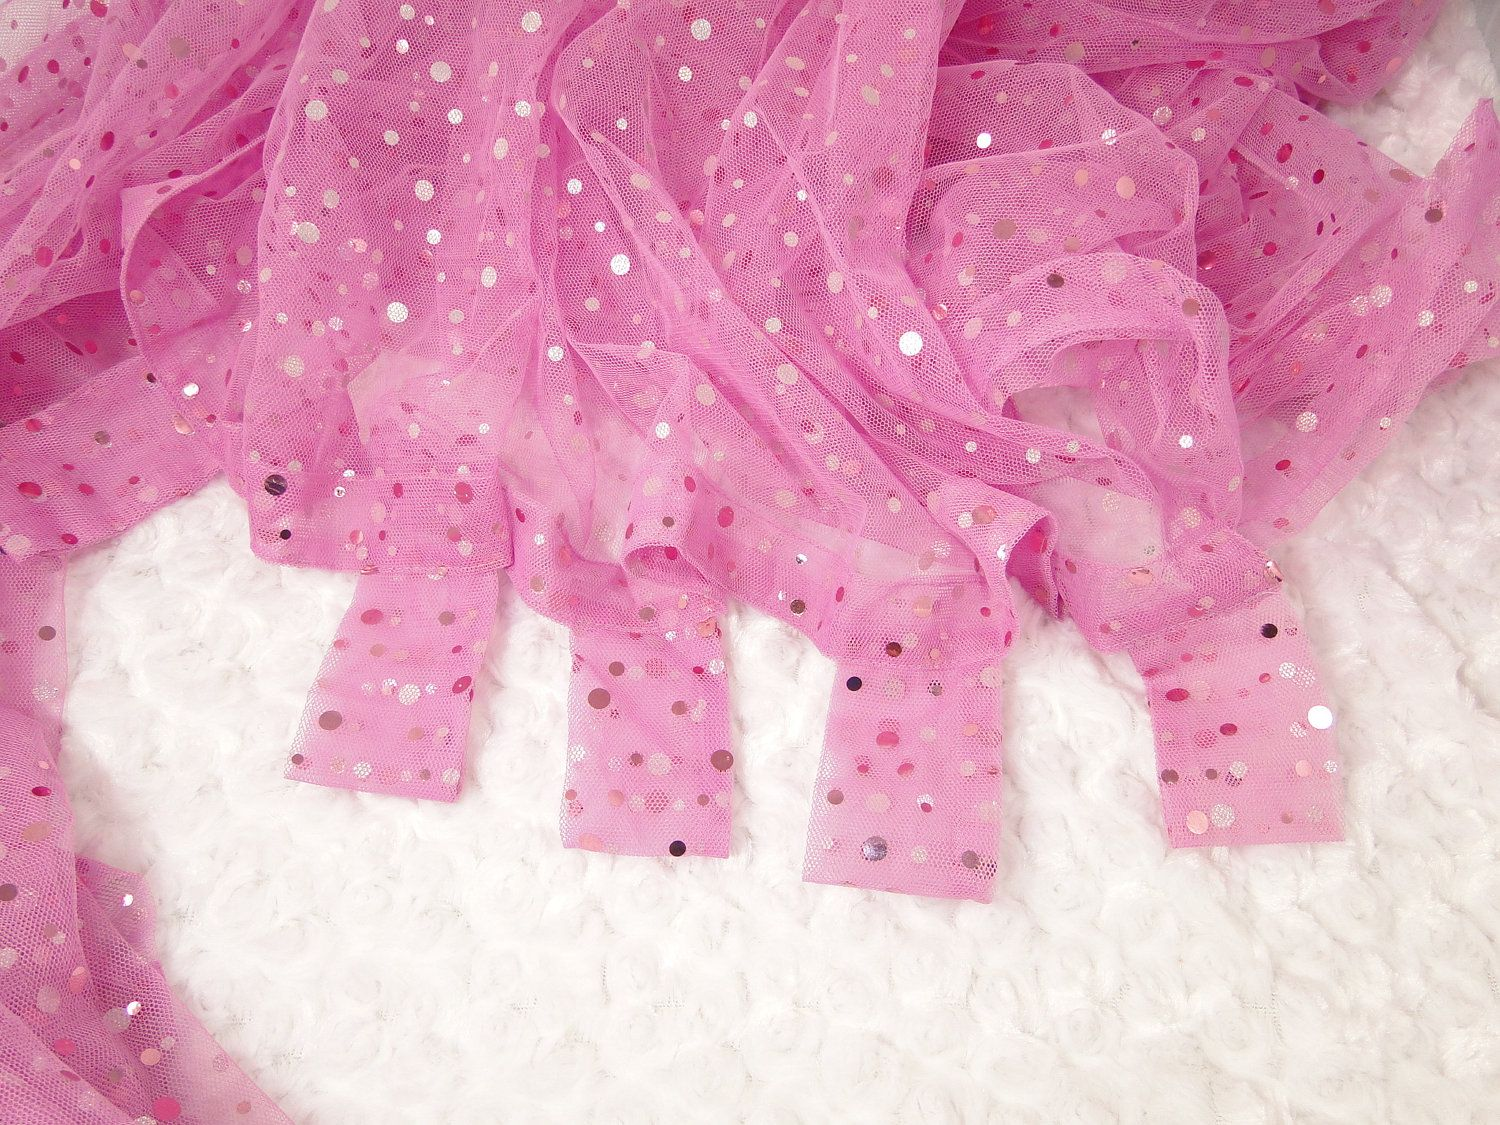 Sheer Pink Sparkle Curtain For Girls Room Sequine Embellished Fabric 84 Inches Long 17 97 Via Etsy Girls Room Curtains Pink Room Pink Sparkle